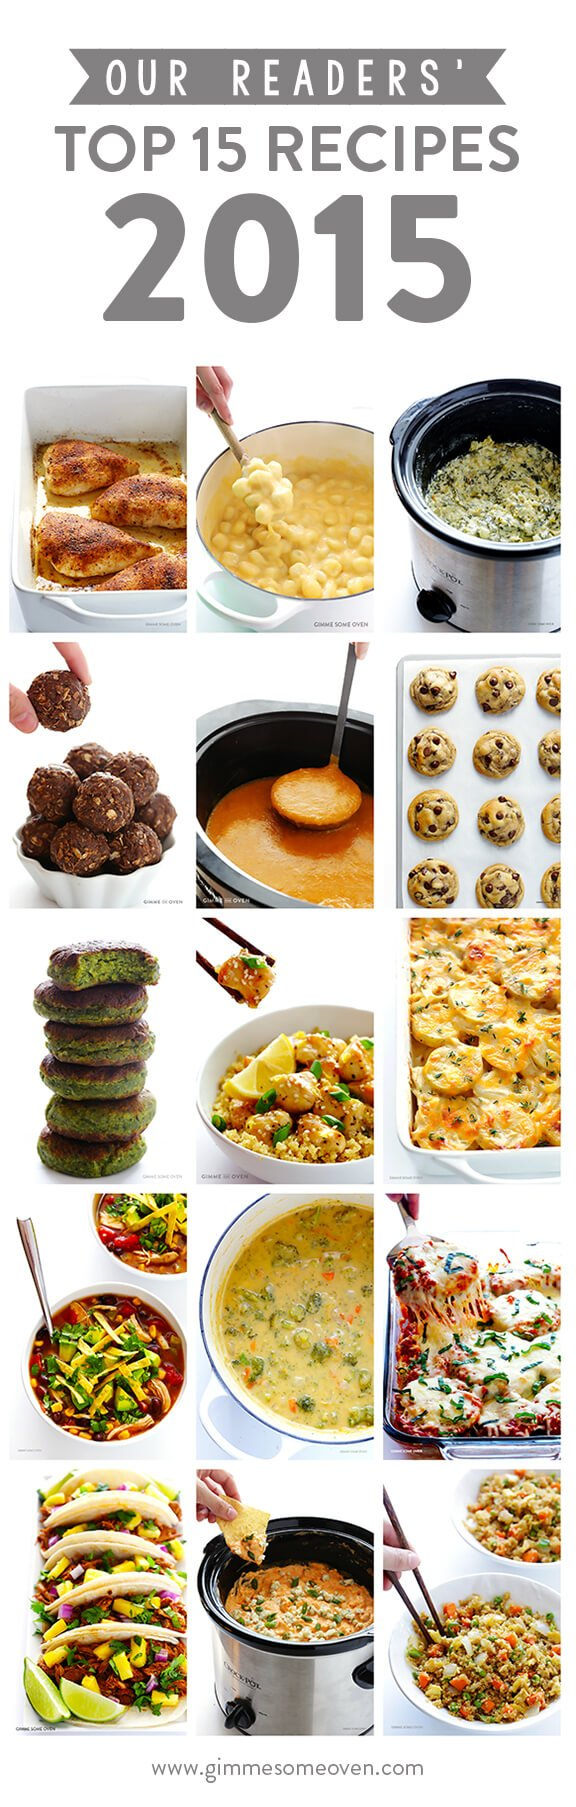 Our Readers Top 15 Recipes of 2015 | gimmesomeoven.com